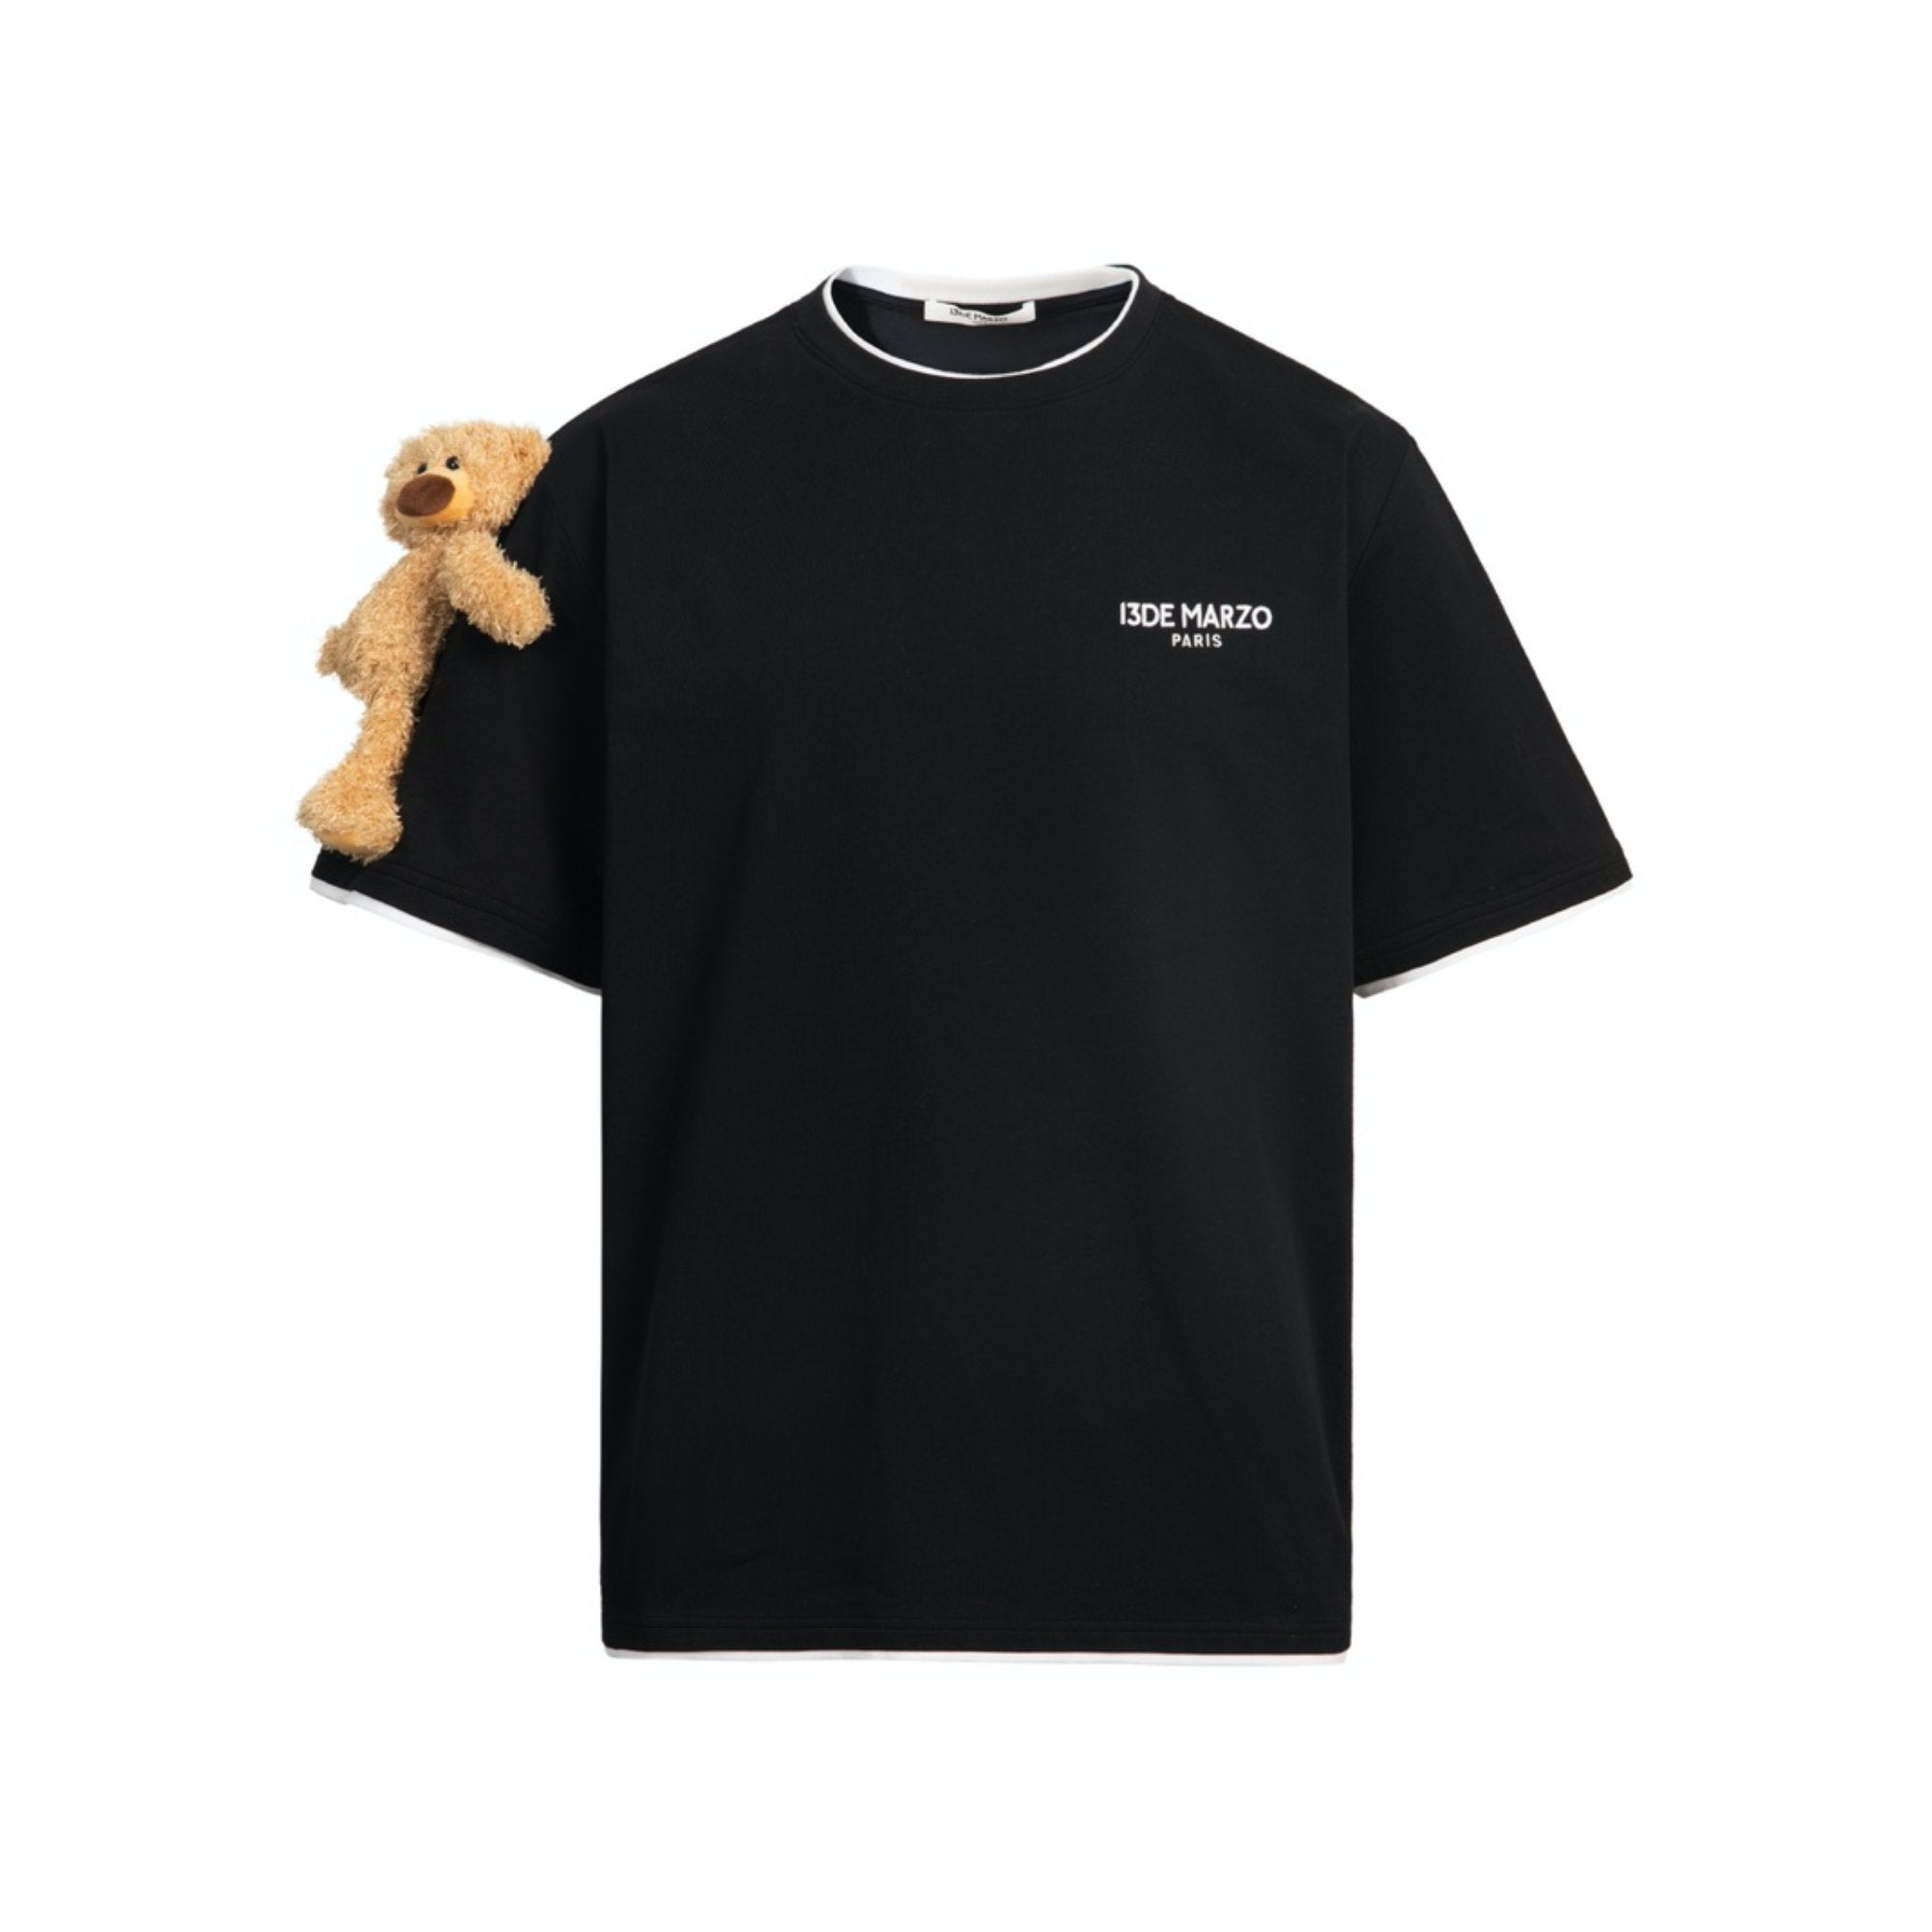 13 DE MARZO Short Sleeve Teddy Bear Tee Black | MADA IN CHINA